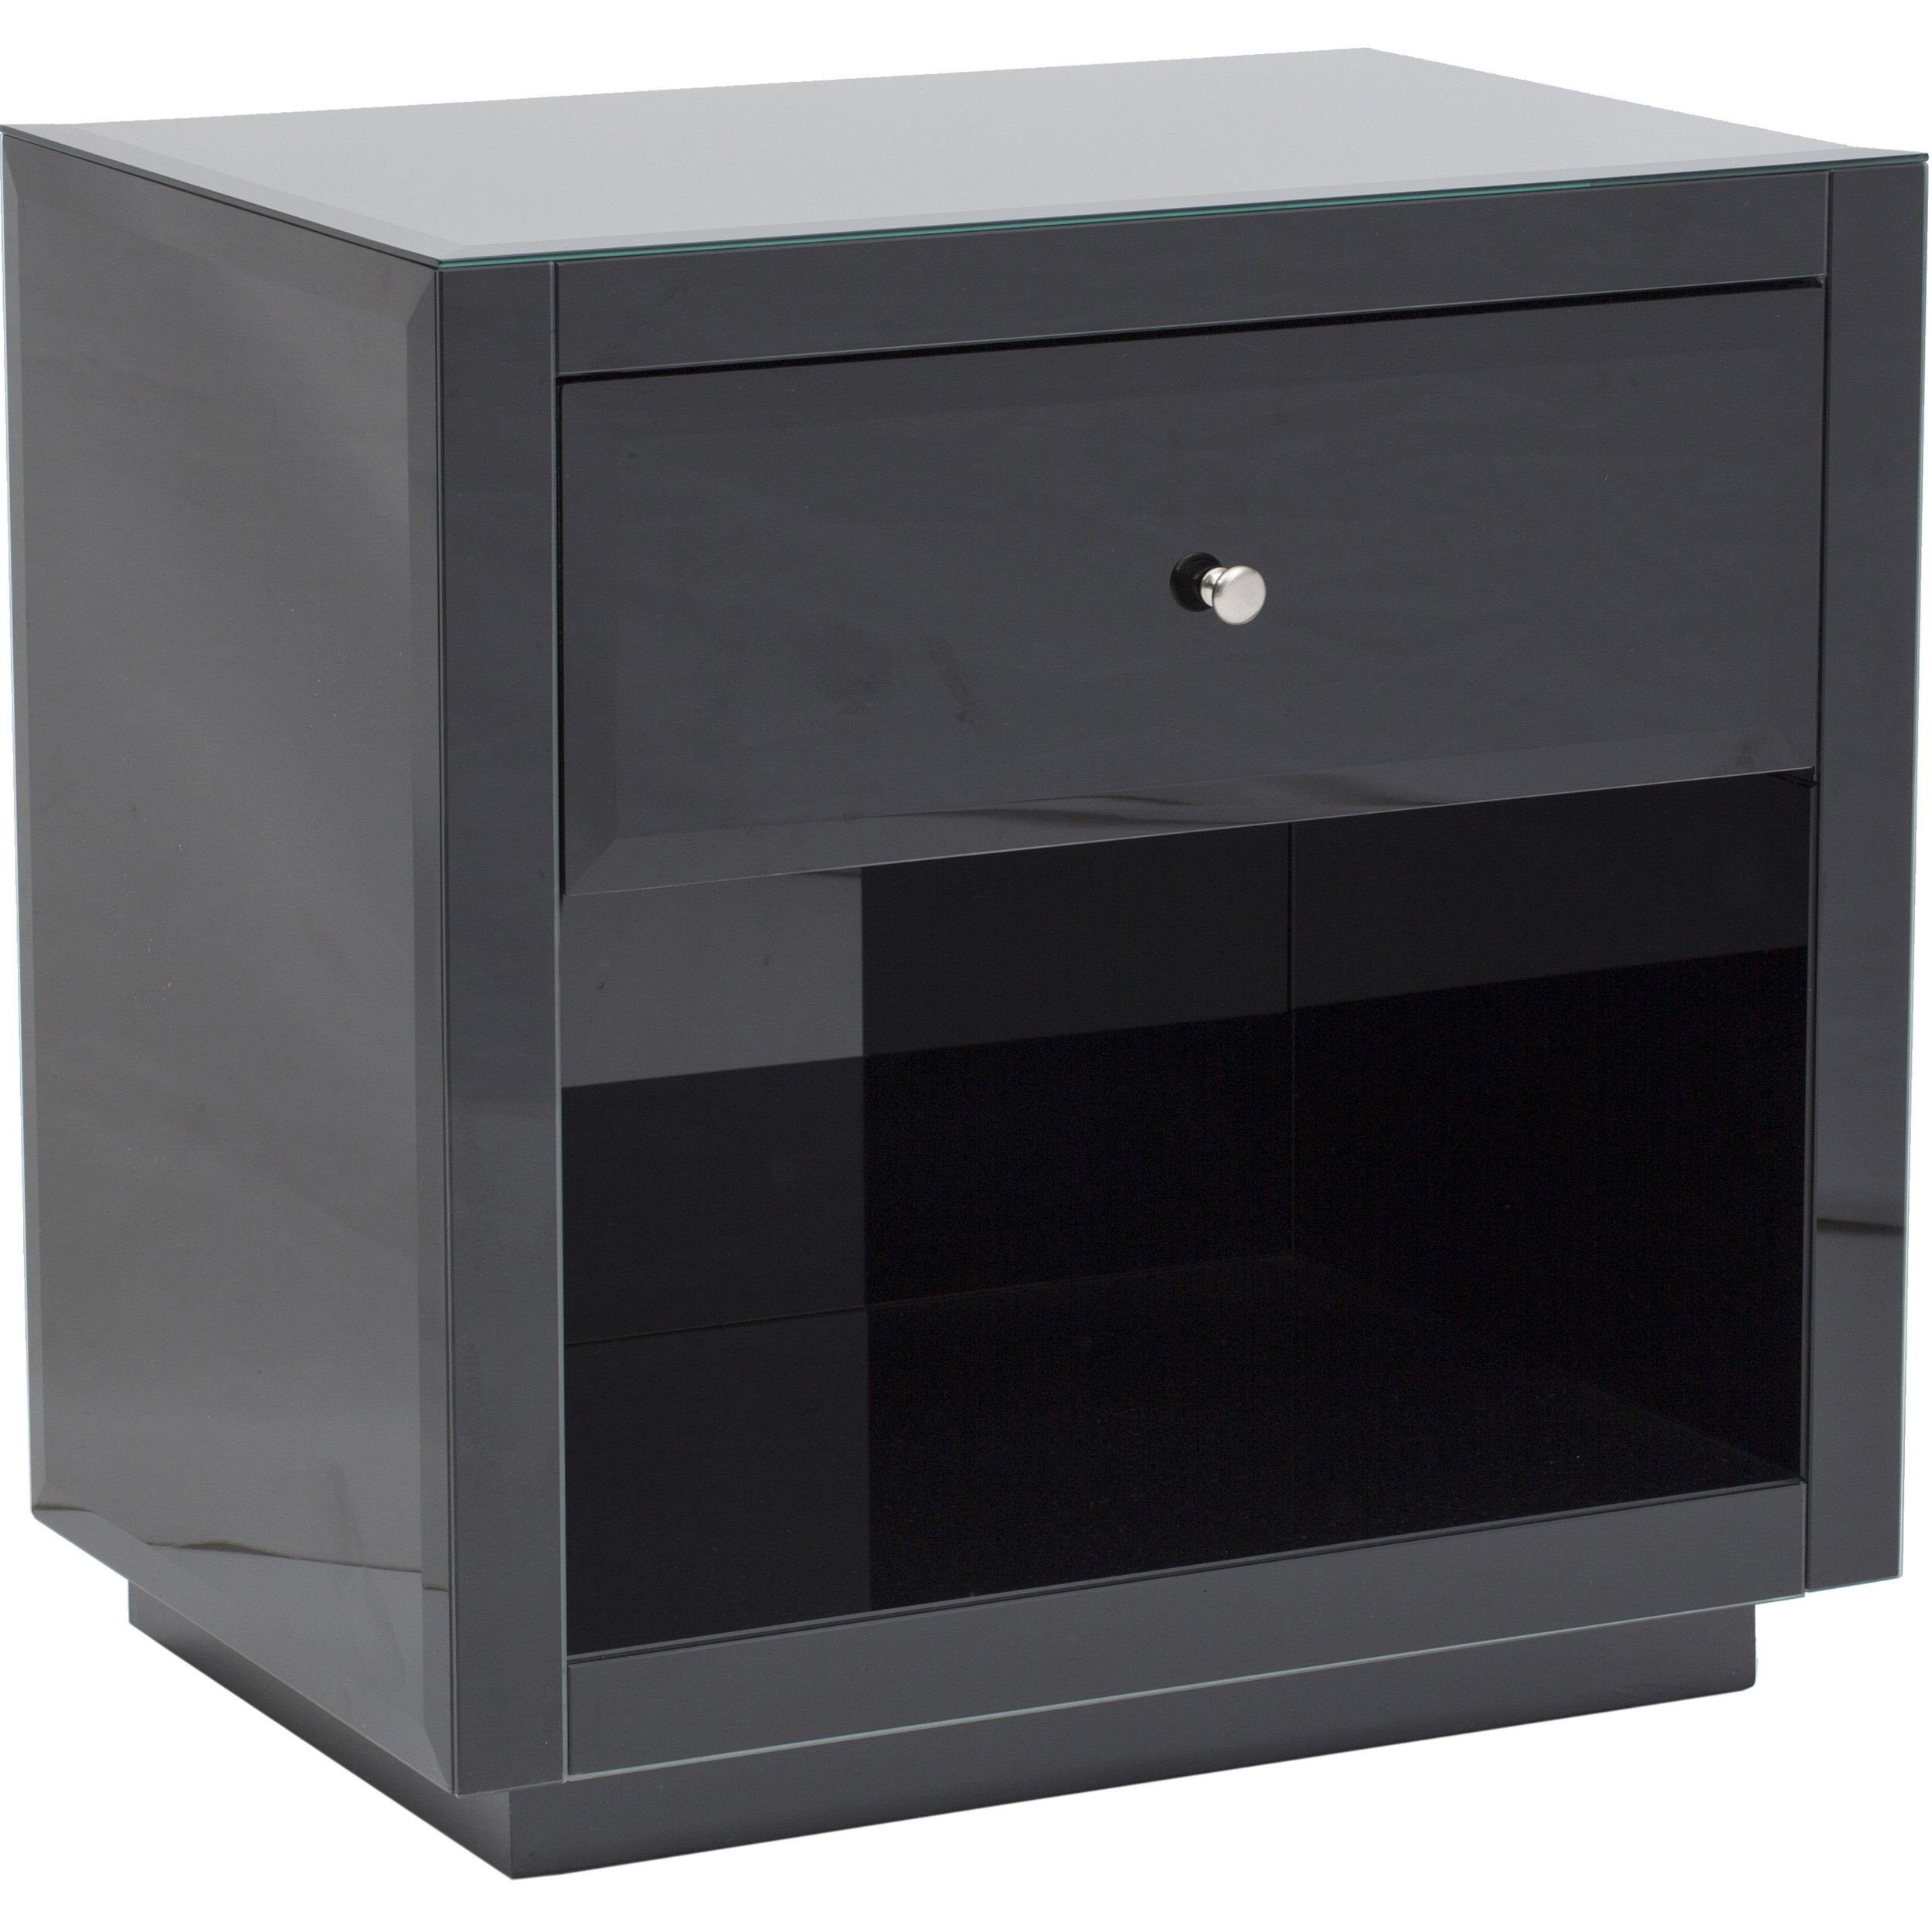 Black Bedroom Side Table Luxury Probably Don T Need This Farrah Side Table Black $619 00